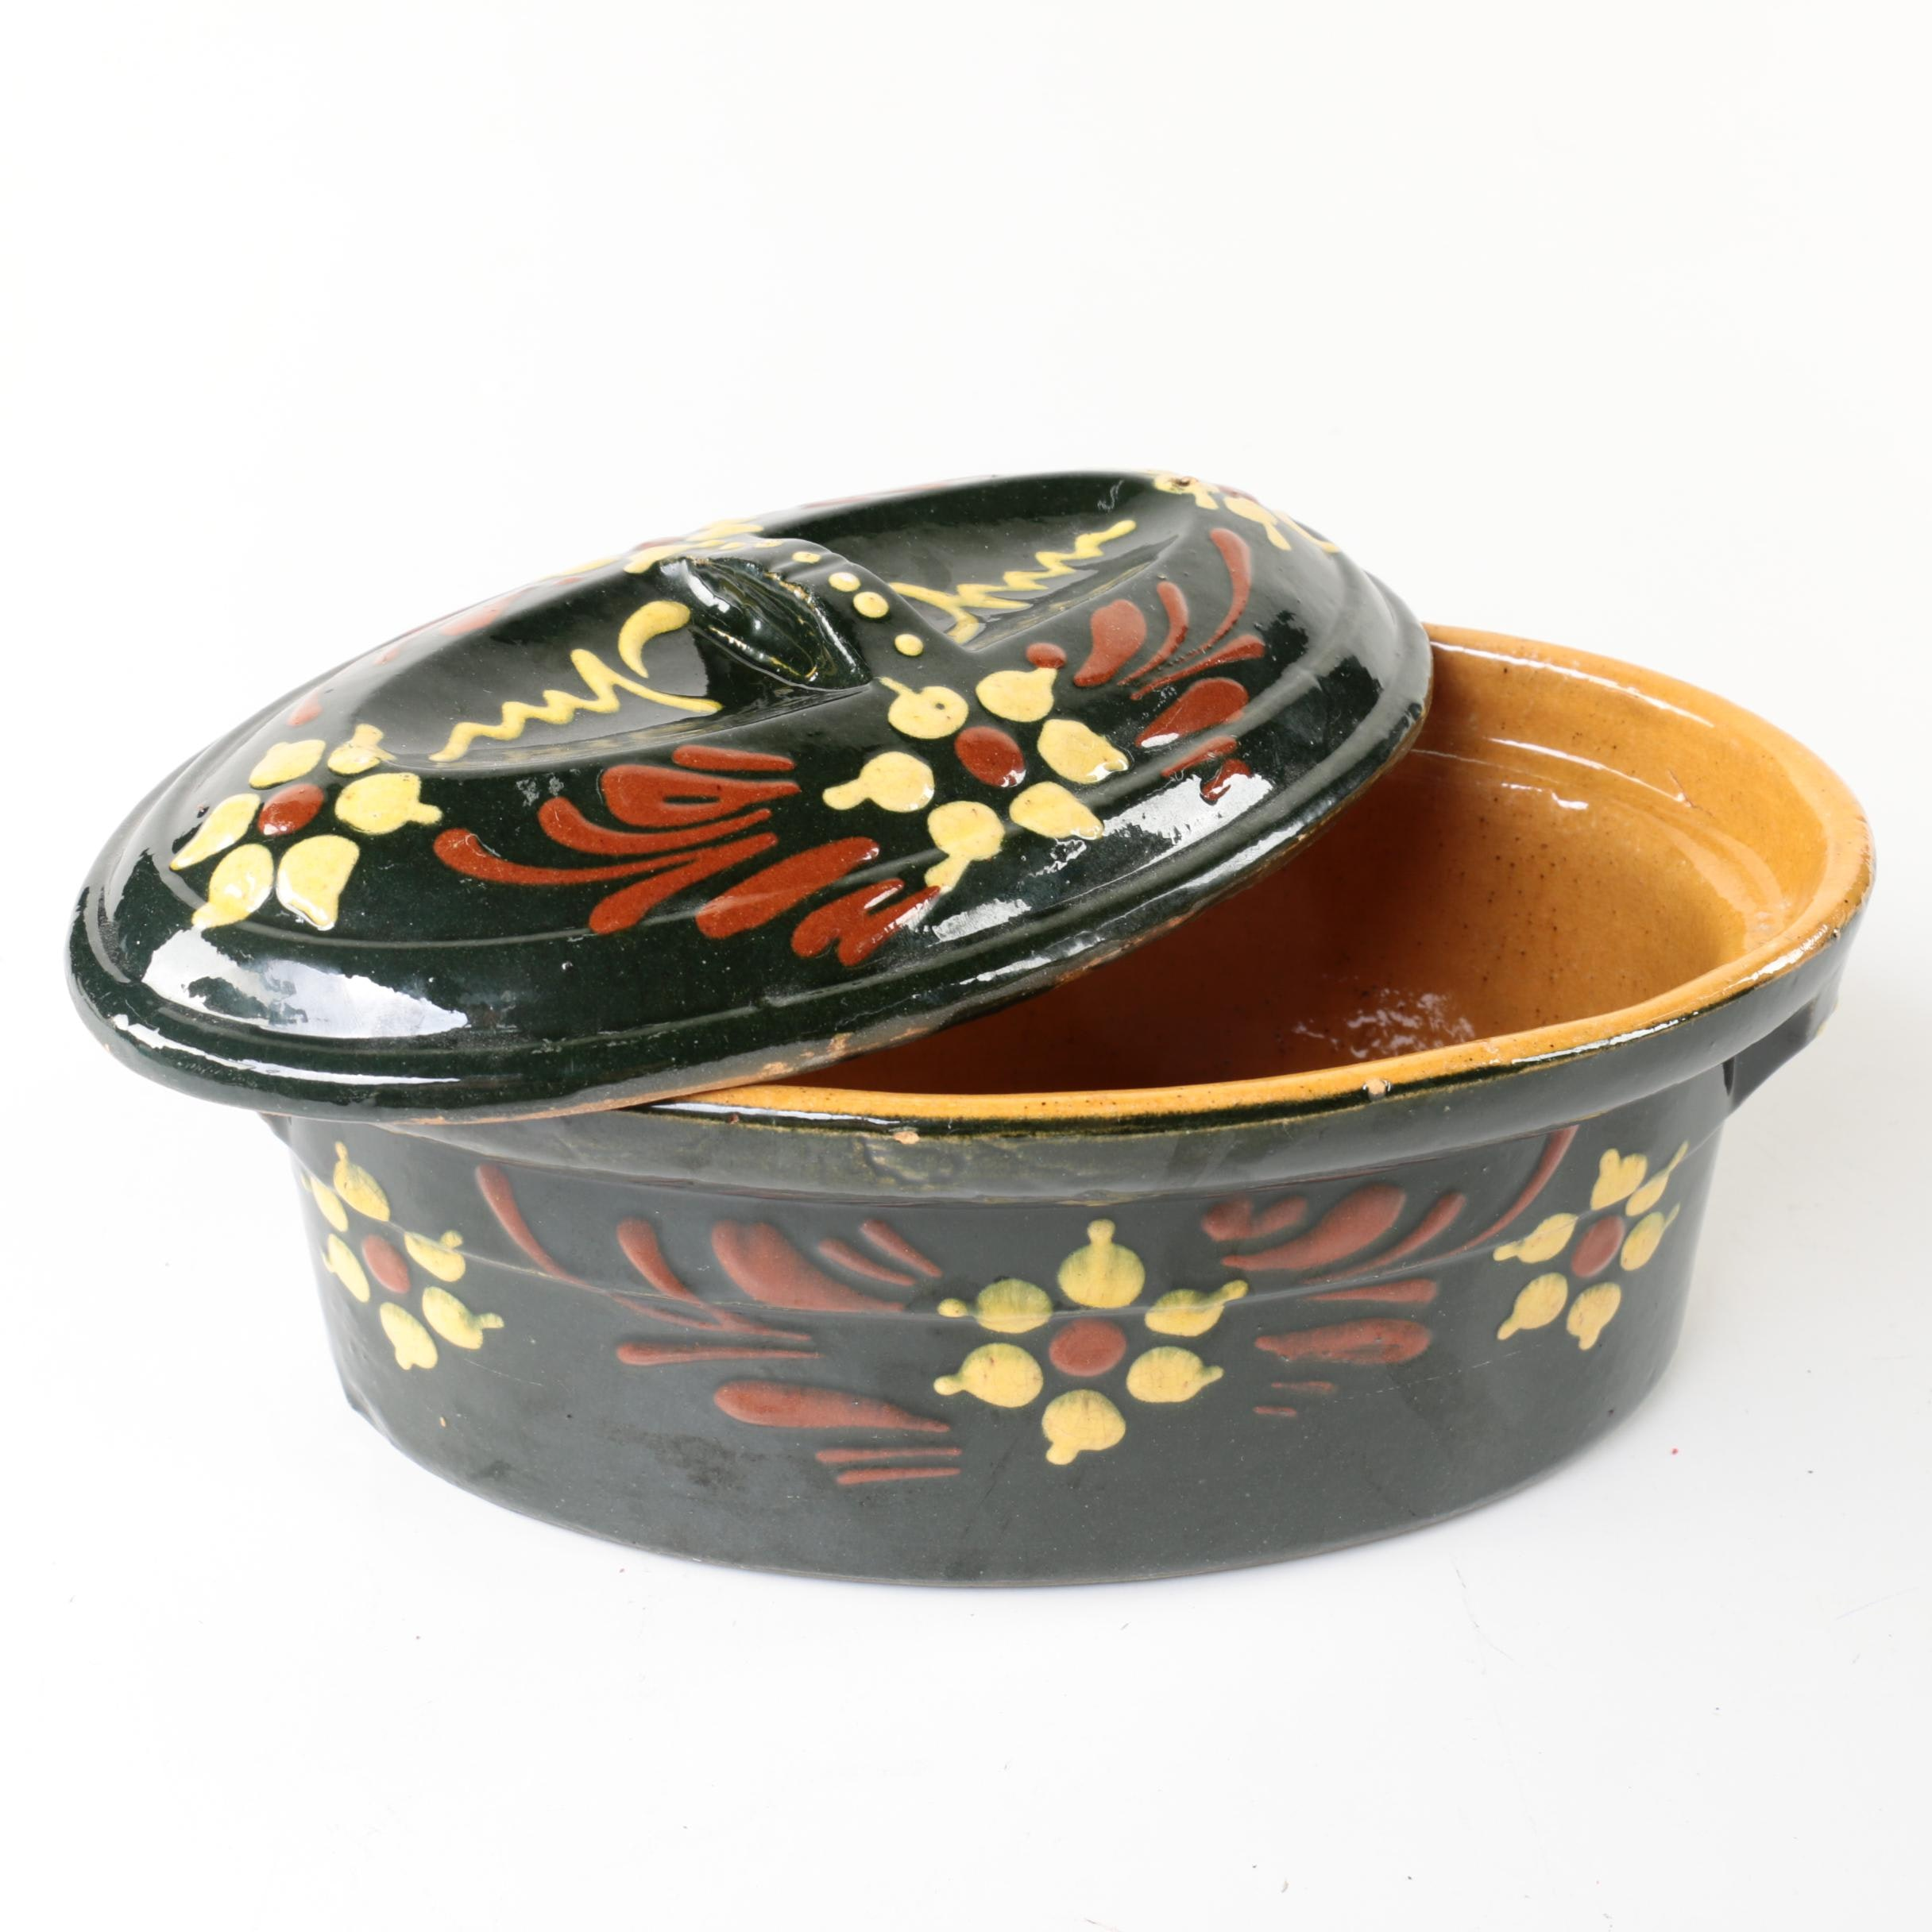 Vintage Yellow Ware Dutch Oven with Floral Pattern